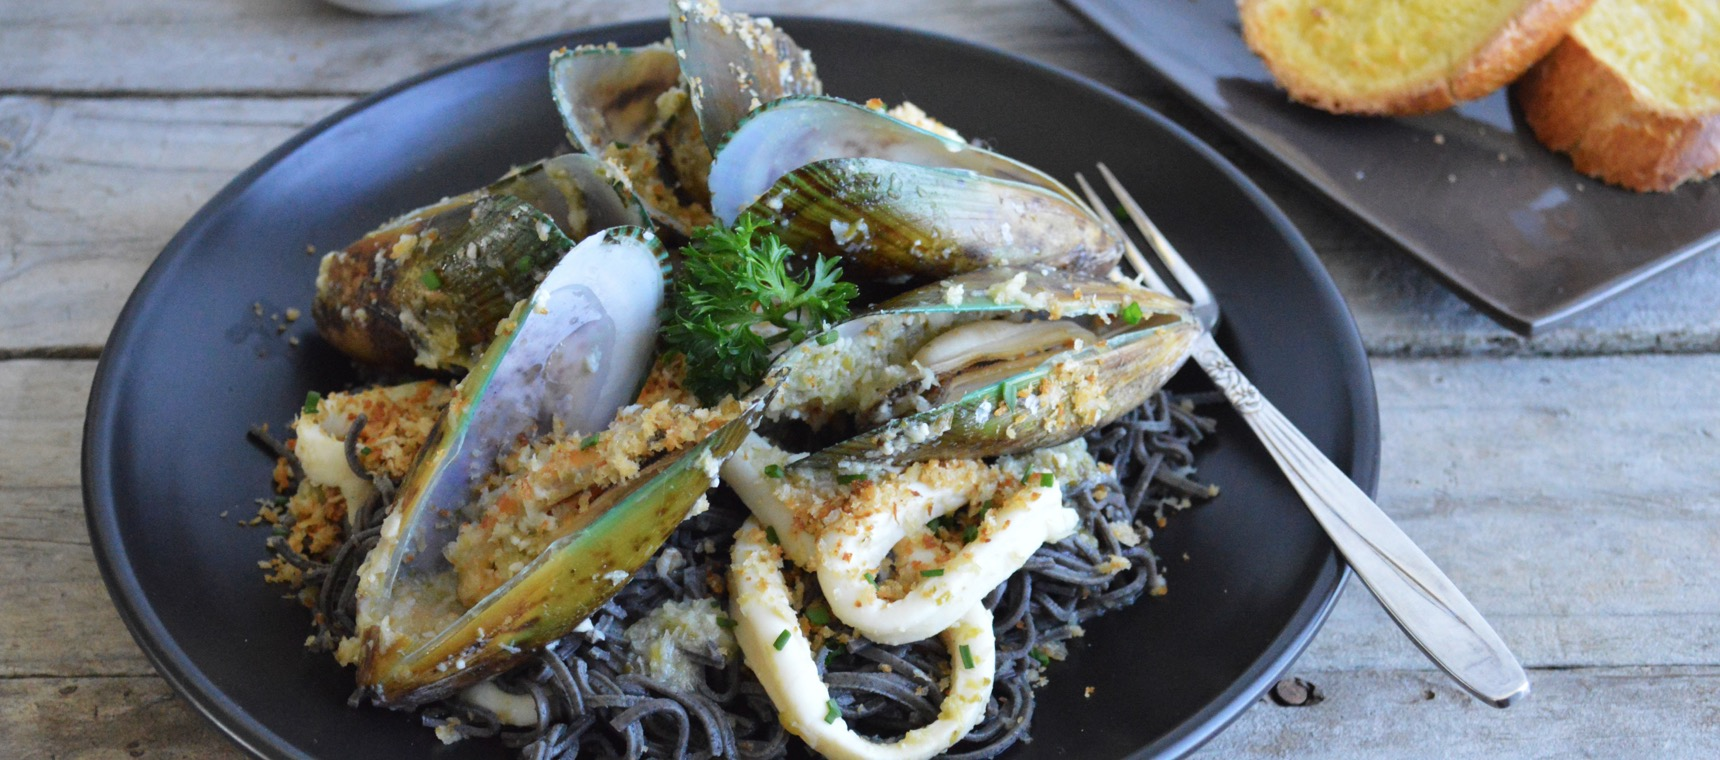 Mussels and Calamari with Black Bean Spaghetti